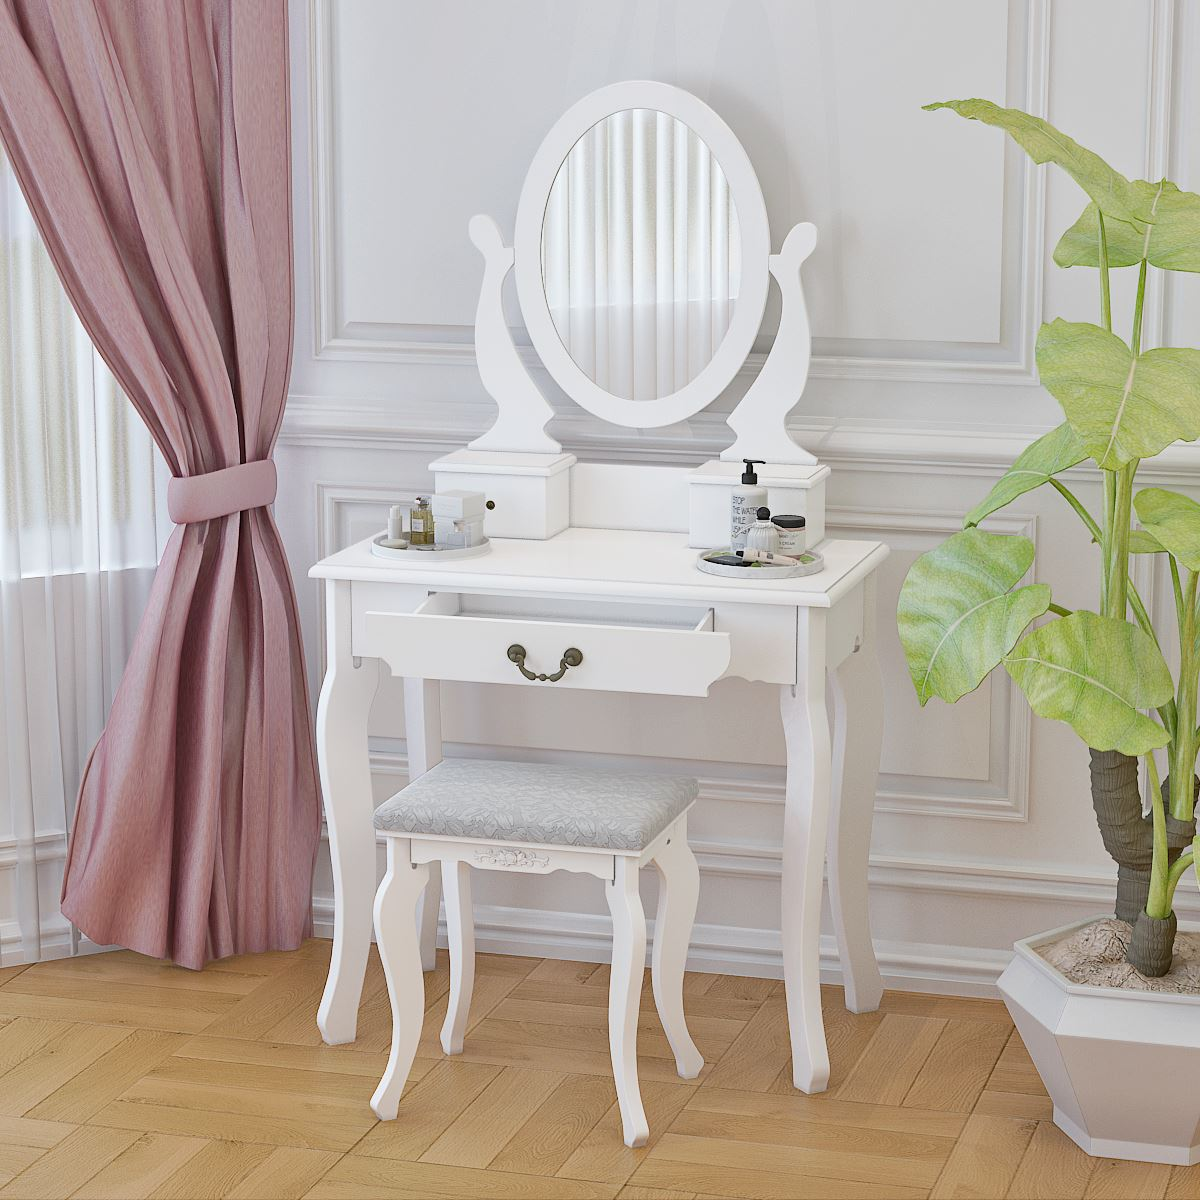 US $88.9 |Panana Nordic Bedroom Vanity Furniture Dressing Table with Mirror  + Stool + 3 Organizer Drawers Fast delivery-in Dressers from Furniture on  ...